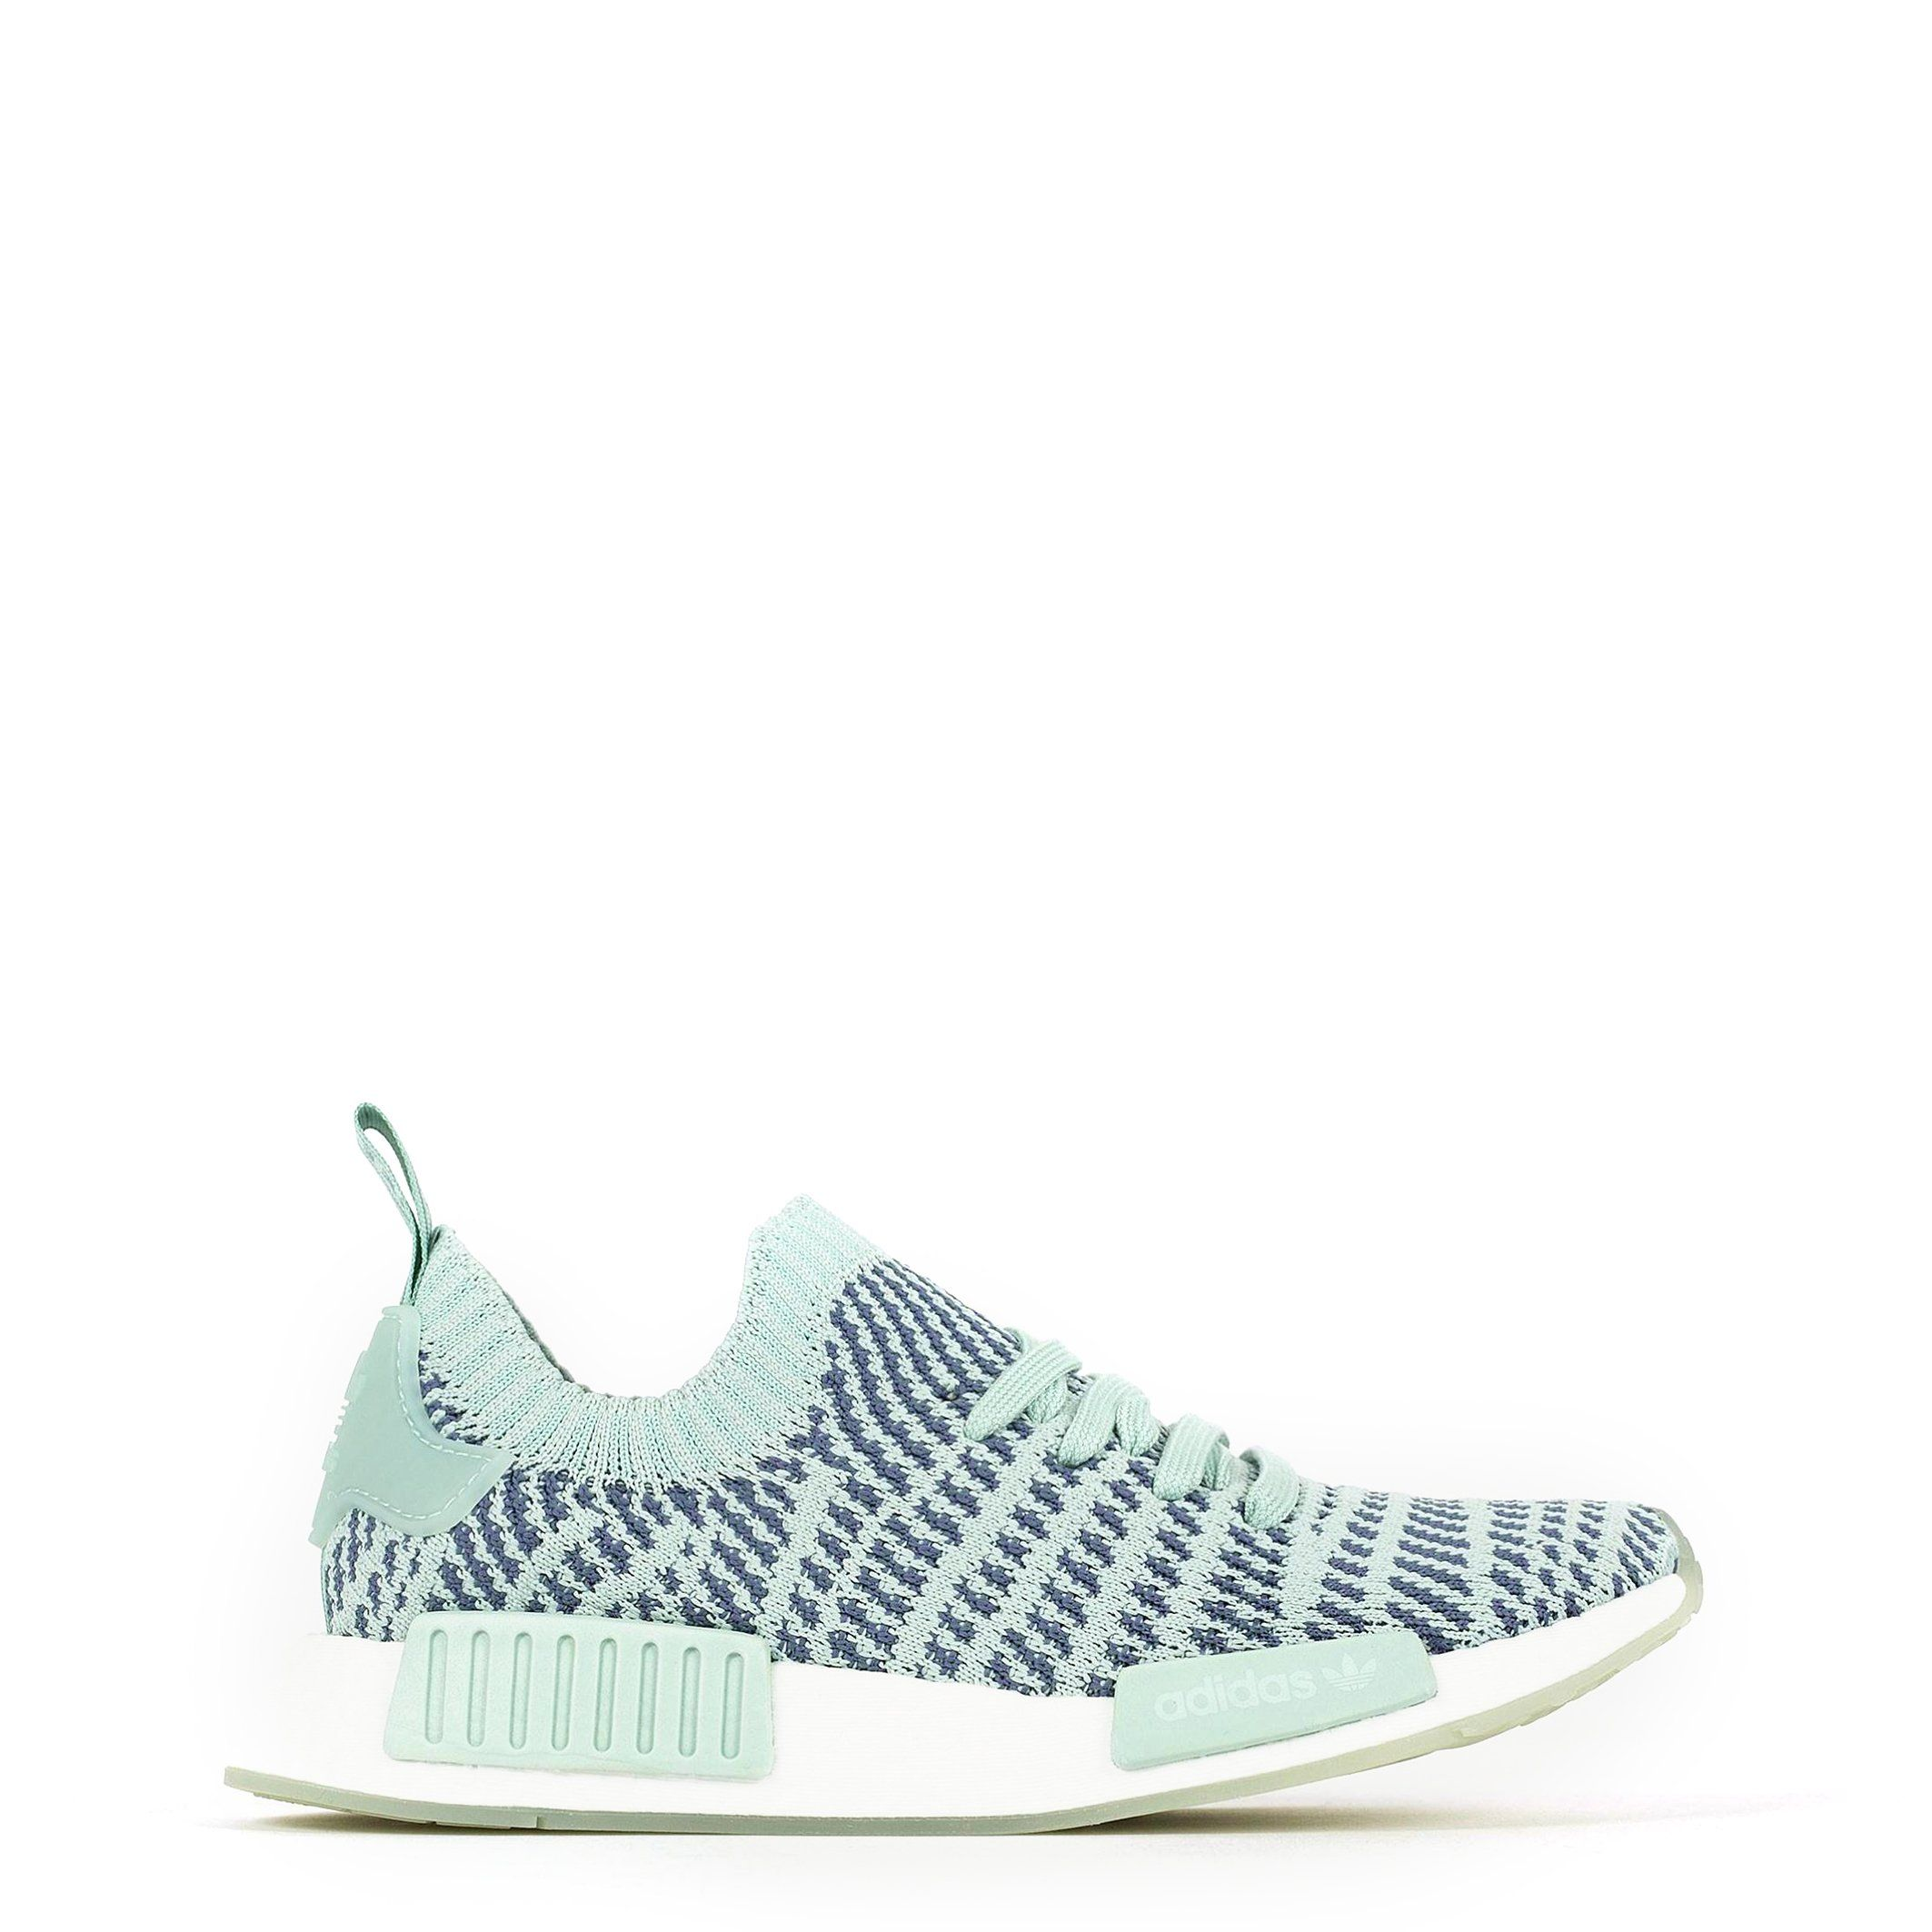 adidas NMD_R1 STLT PRIMEKNIT SHOES | Products